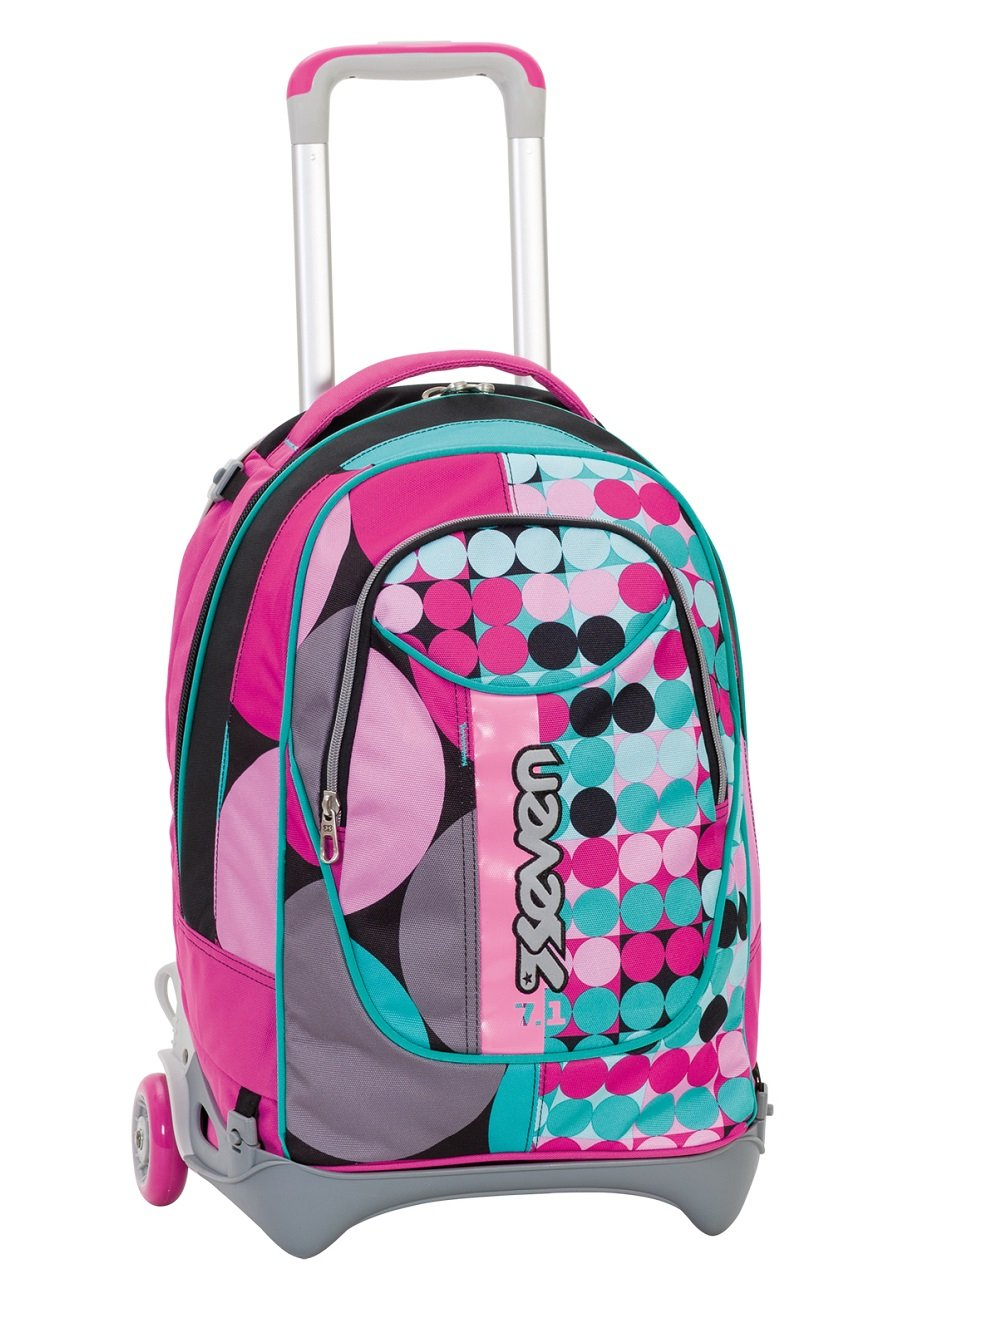 354d4b8566 Wheeled SEVEN NEW JACK - LOUD - Rose Violet Blue - 35 LT removable and  washable Backpack + Trolley - School travel: Amazon.co.uk: Baby